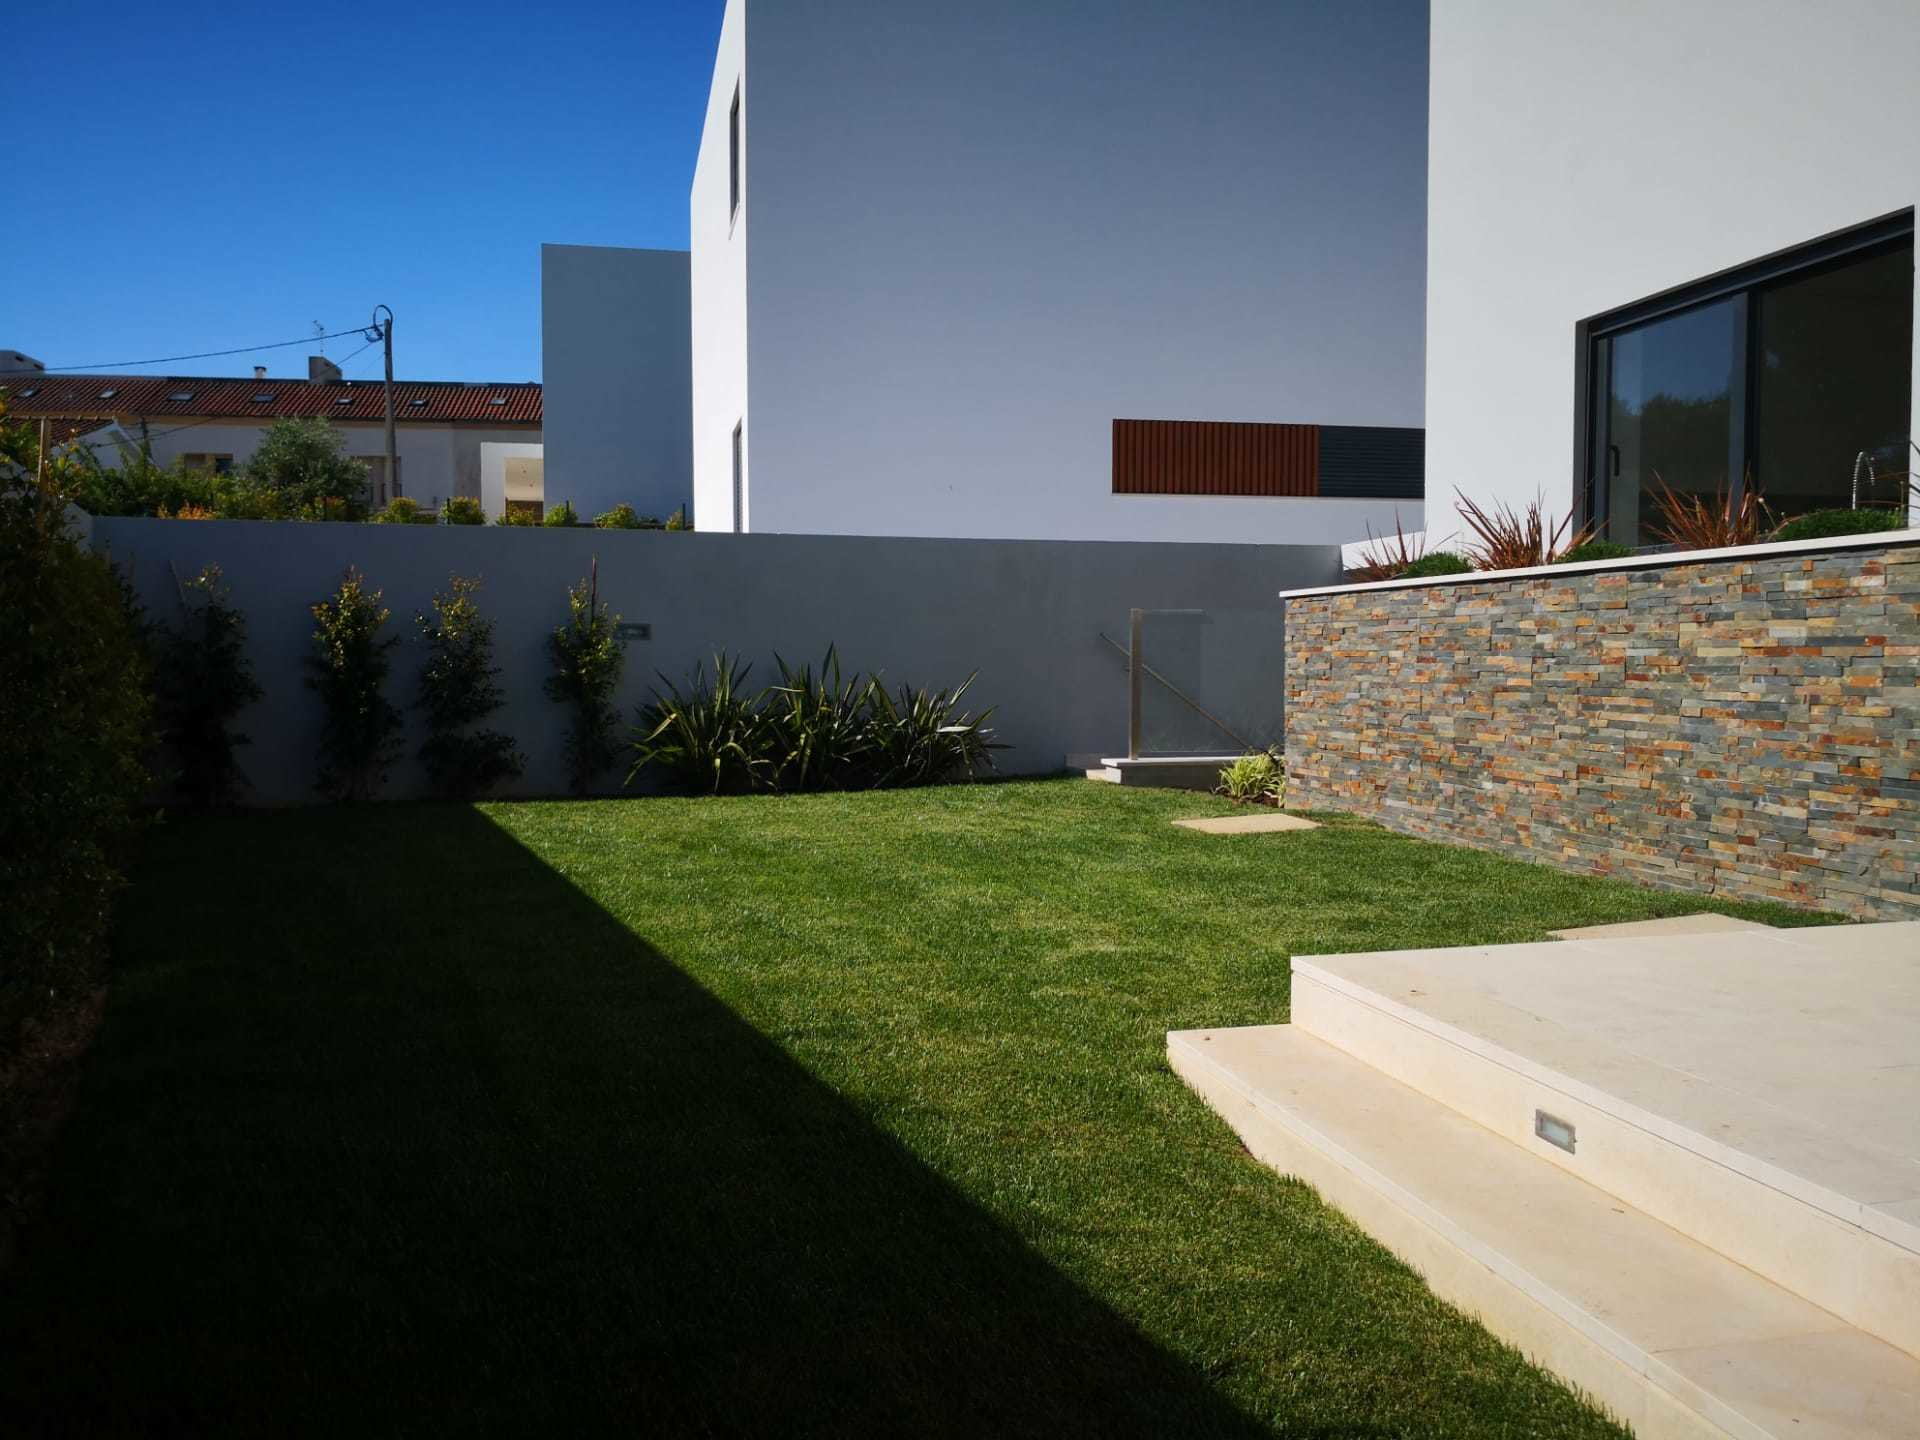 4 Bedroom Villa Cascais, Lisbon Ref: AVI329